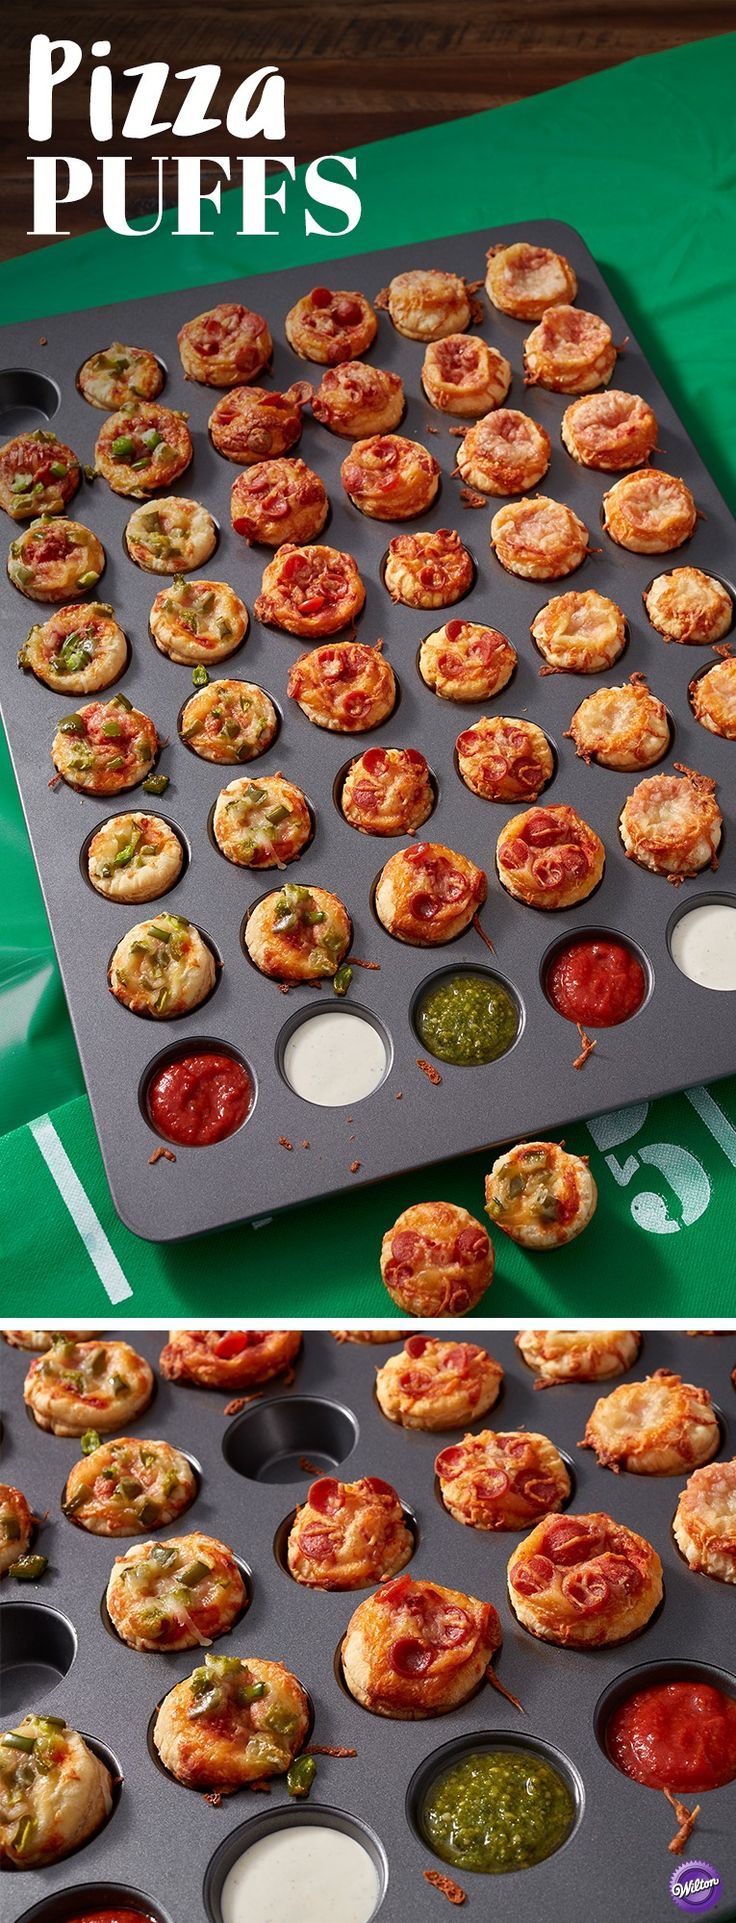 Pizza Puffs Recipe - Learn how to make these delicious pepperoni pizza puffs for a quick and easy addition to your Father's Day celebration. Use the Wilton Mega Mini Muffic Pan to make 48 pizza puffs at once!